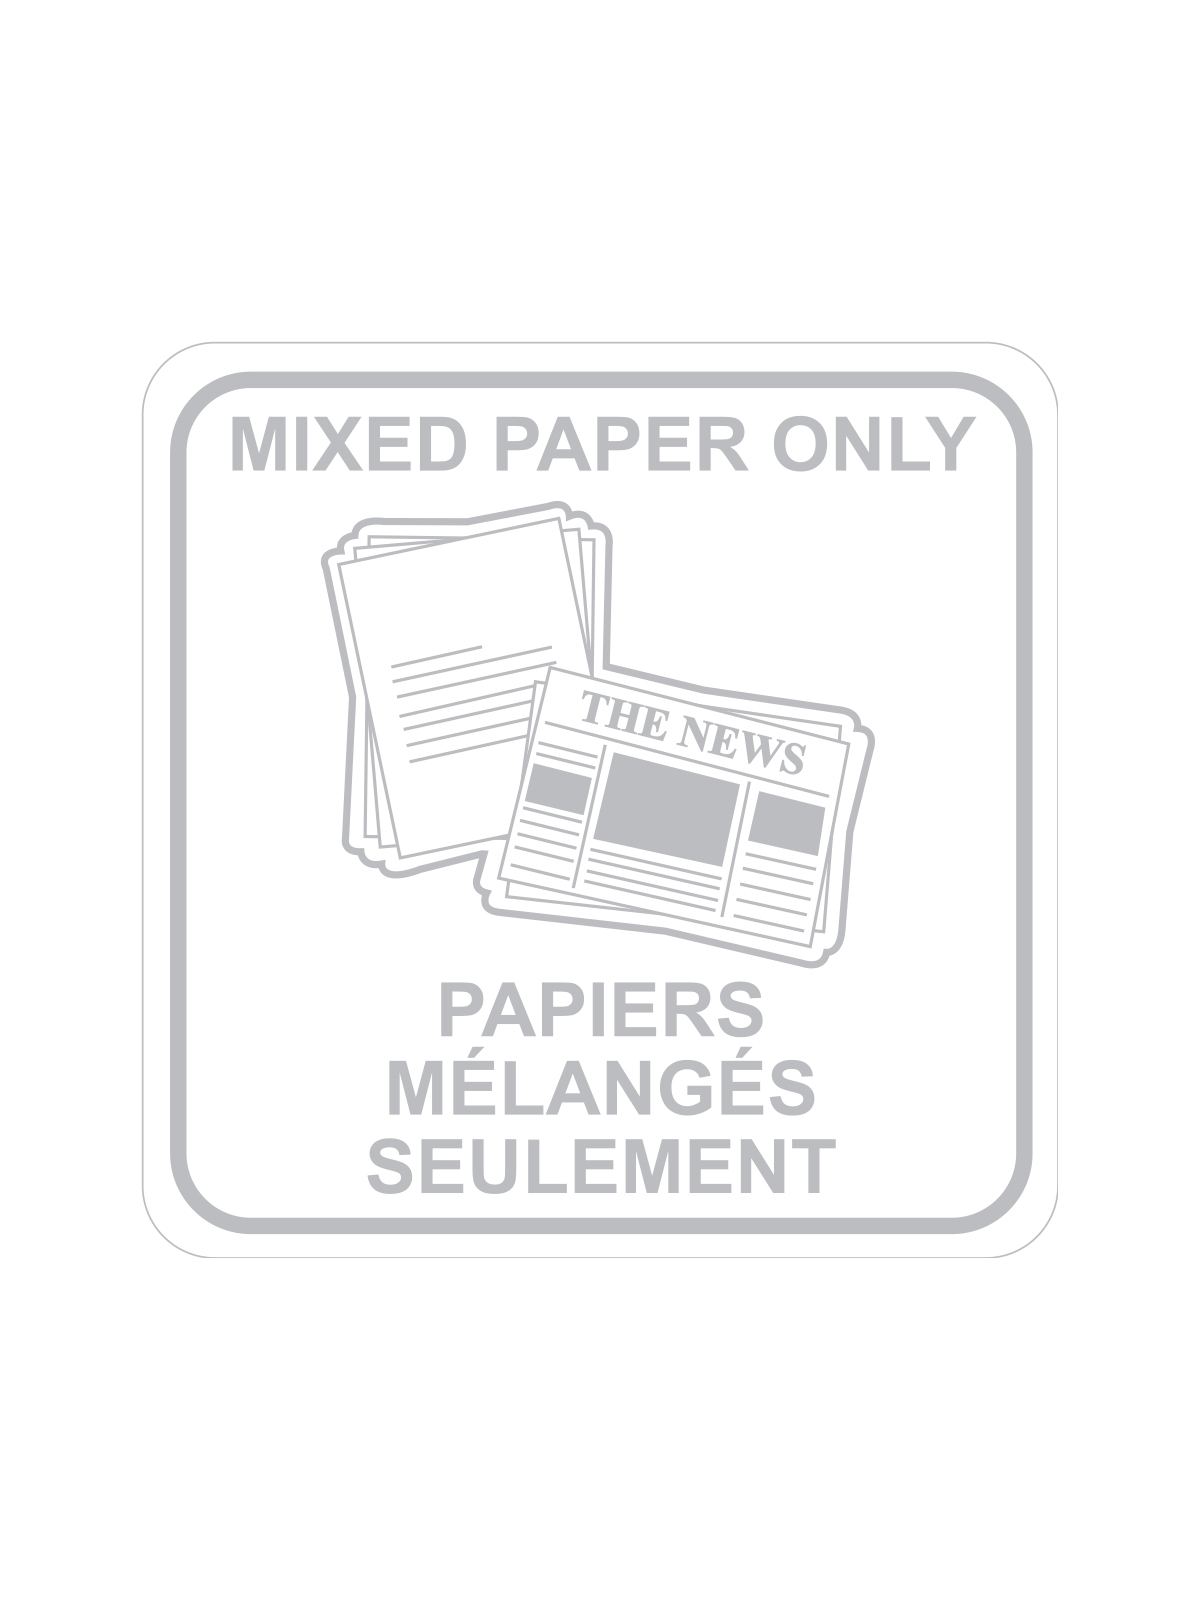 SQUARE LABEL MIXED PAPER ONLY - ENG/FRE